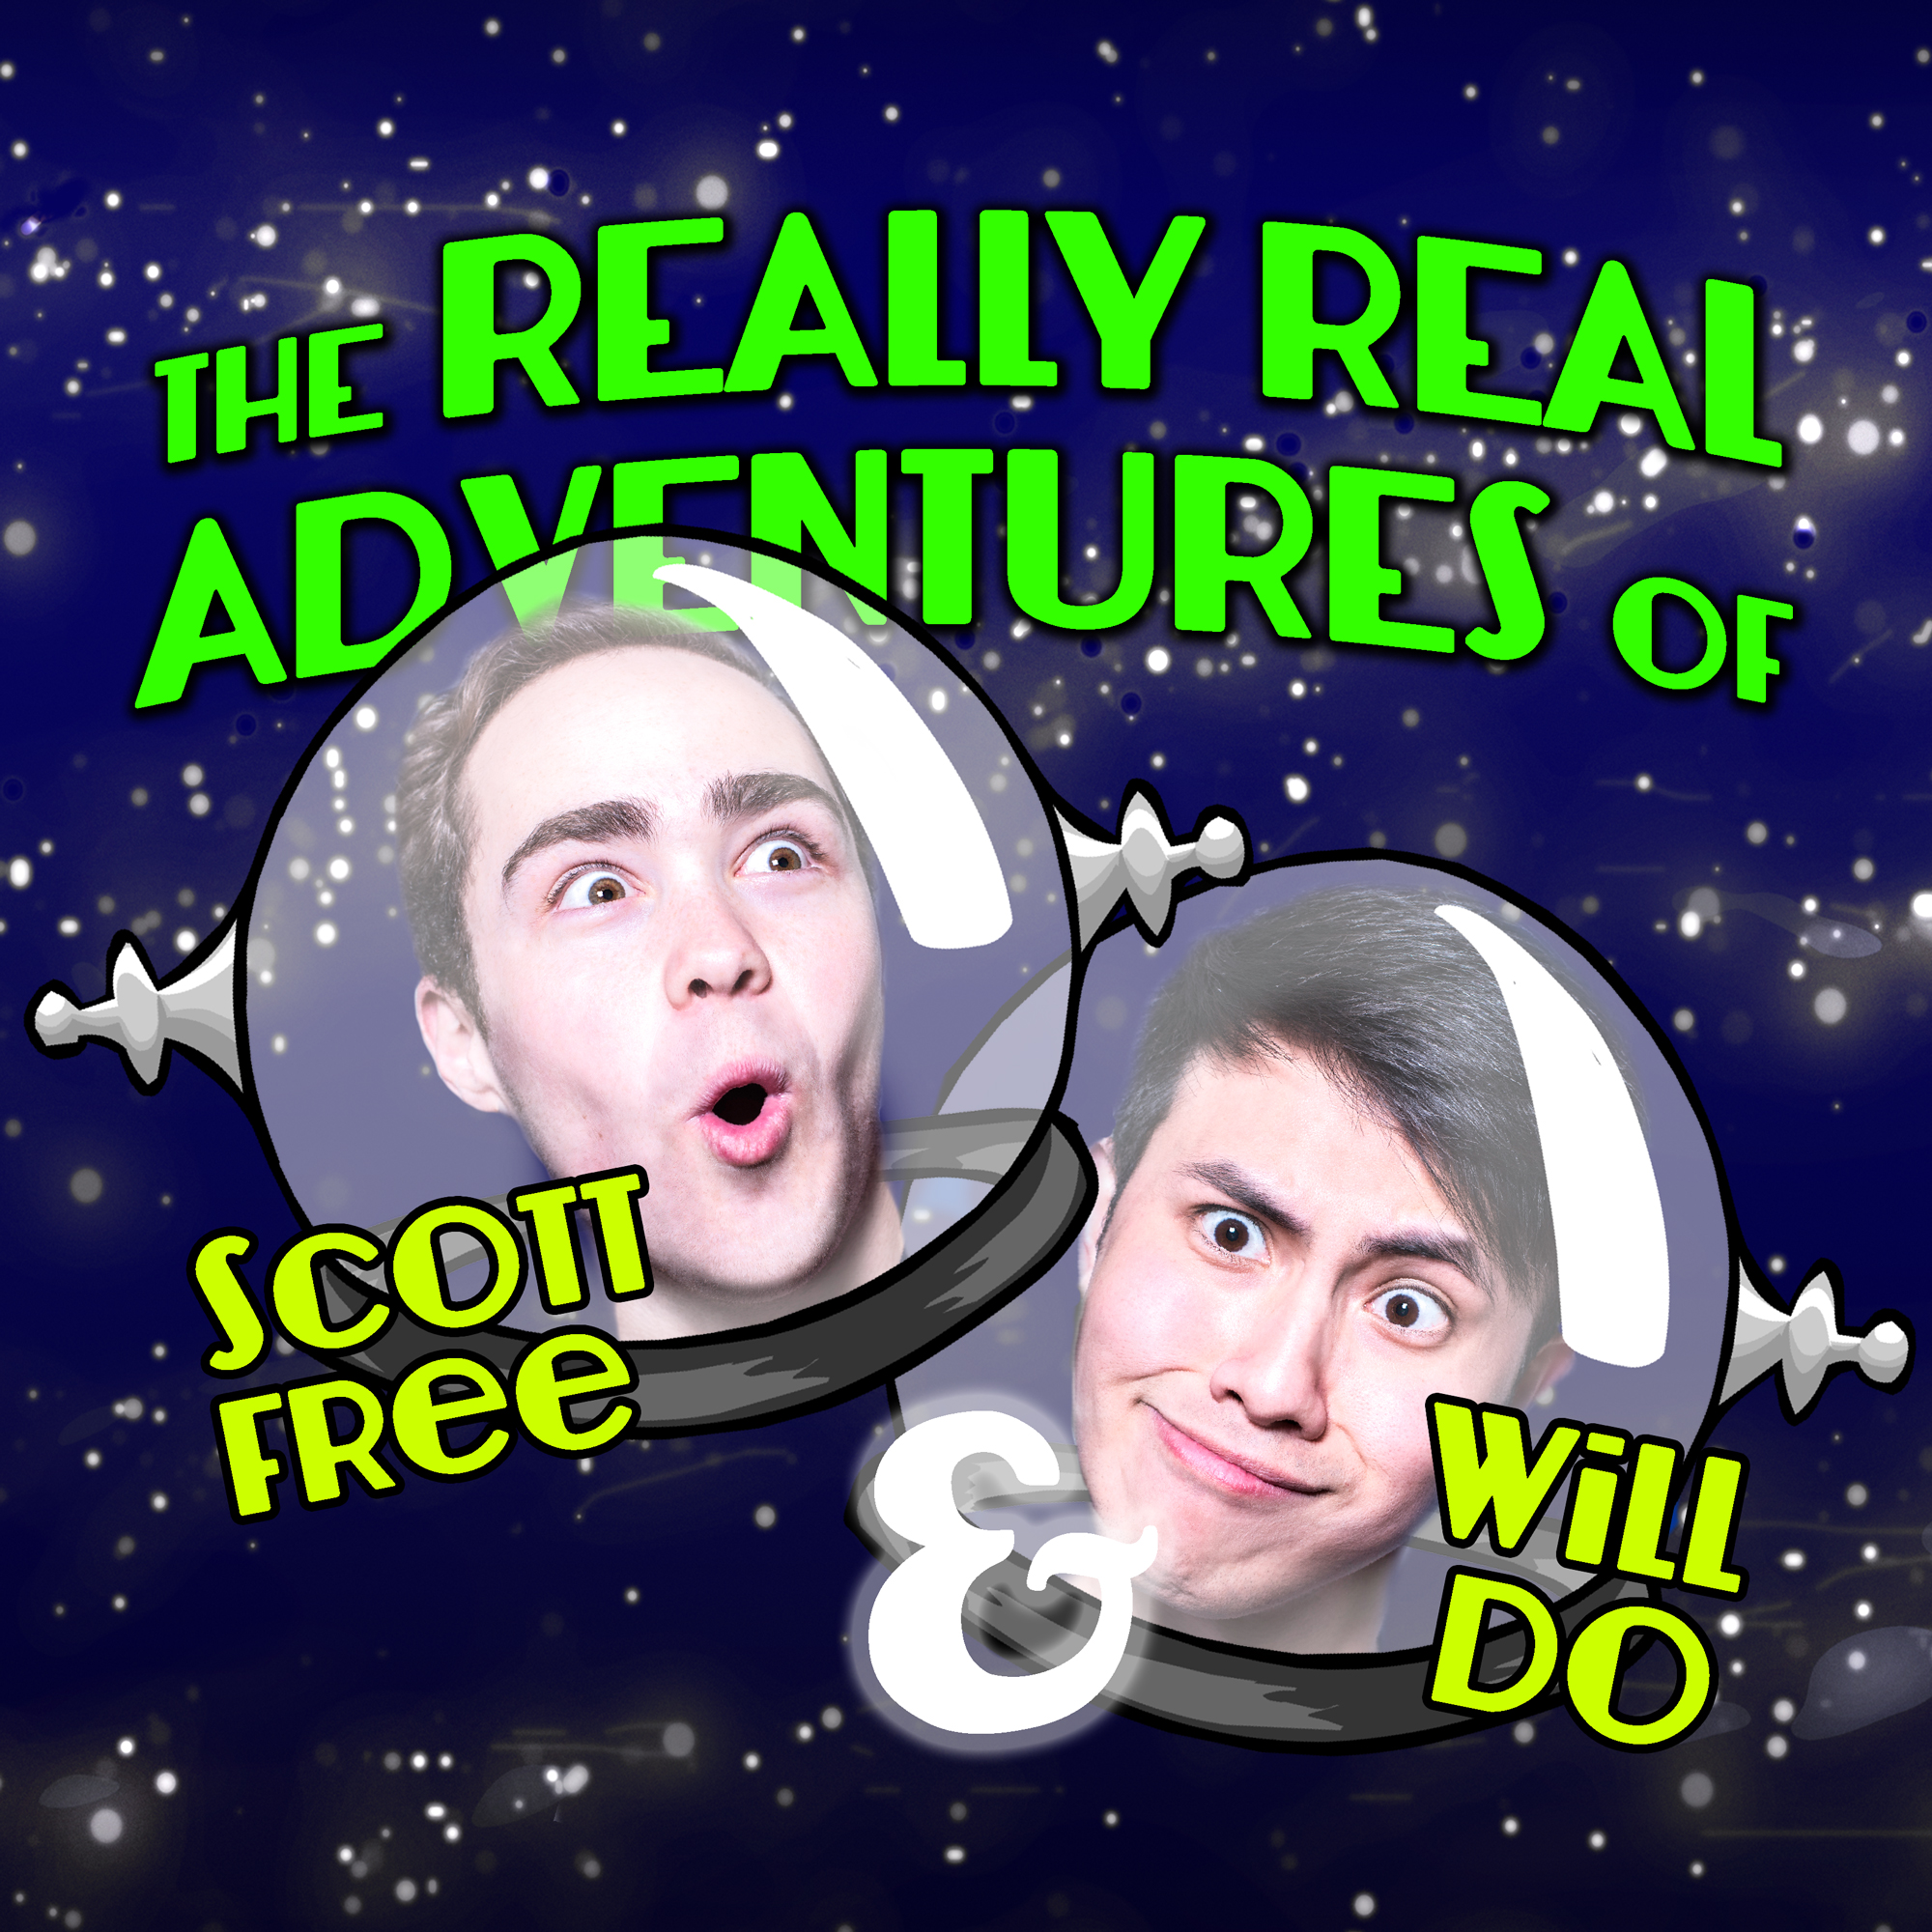 The really real adventures of scott free and will do - May 11 - June 30 2019Two best friends discover they're actually IMAGINARY best friends…and that means anything is possible!4 and up